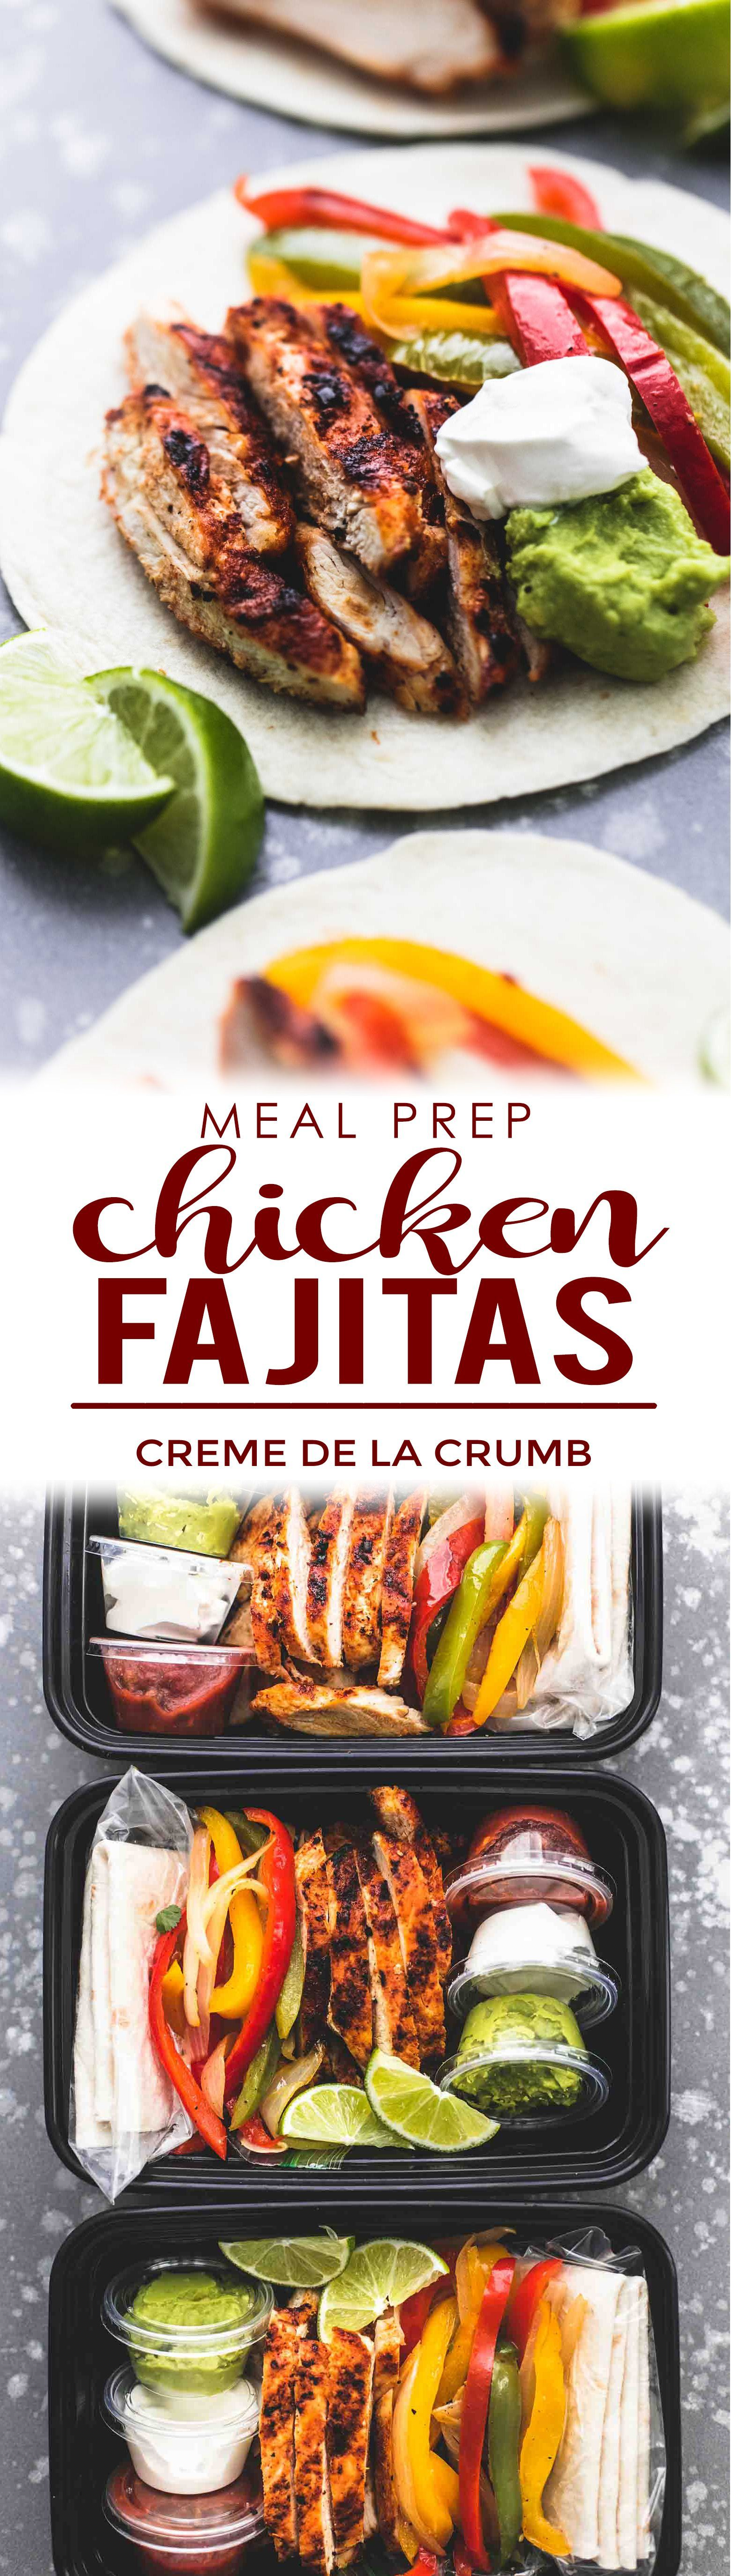 Meal Prep Chicken Fajitas are the perfect solution for busy cooks who love big flavors! These skillet, oven baked, or grill chicken fajitas are easy to make in about 30 minutes and are a great make ahead option for meals throughout the week.  